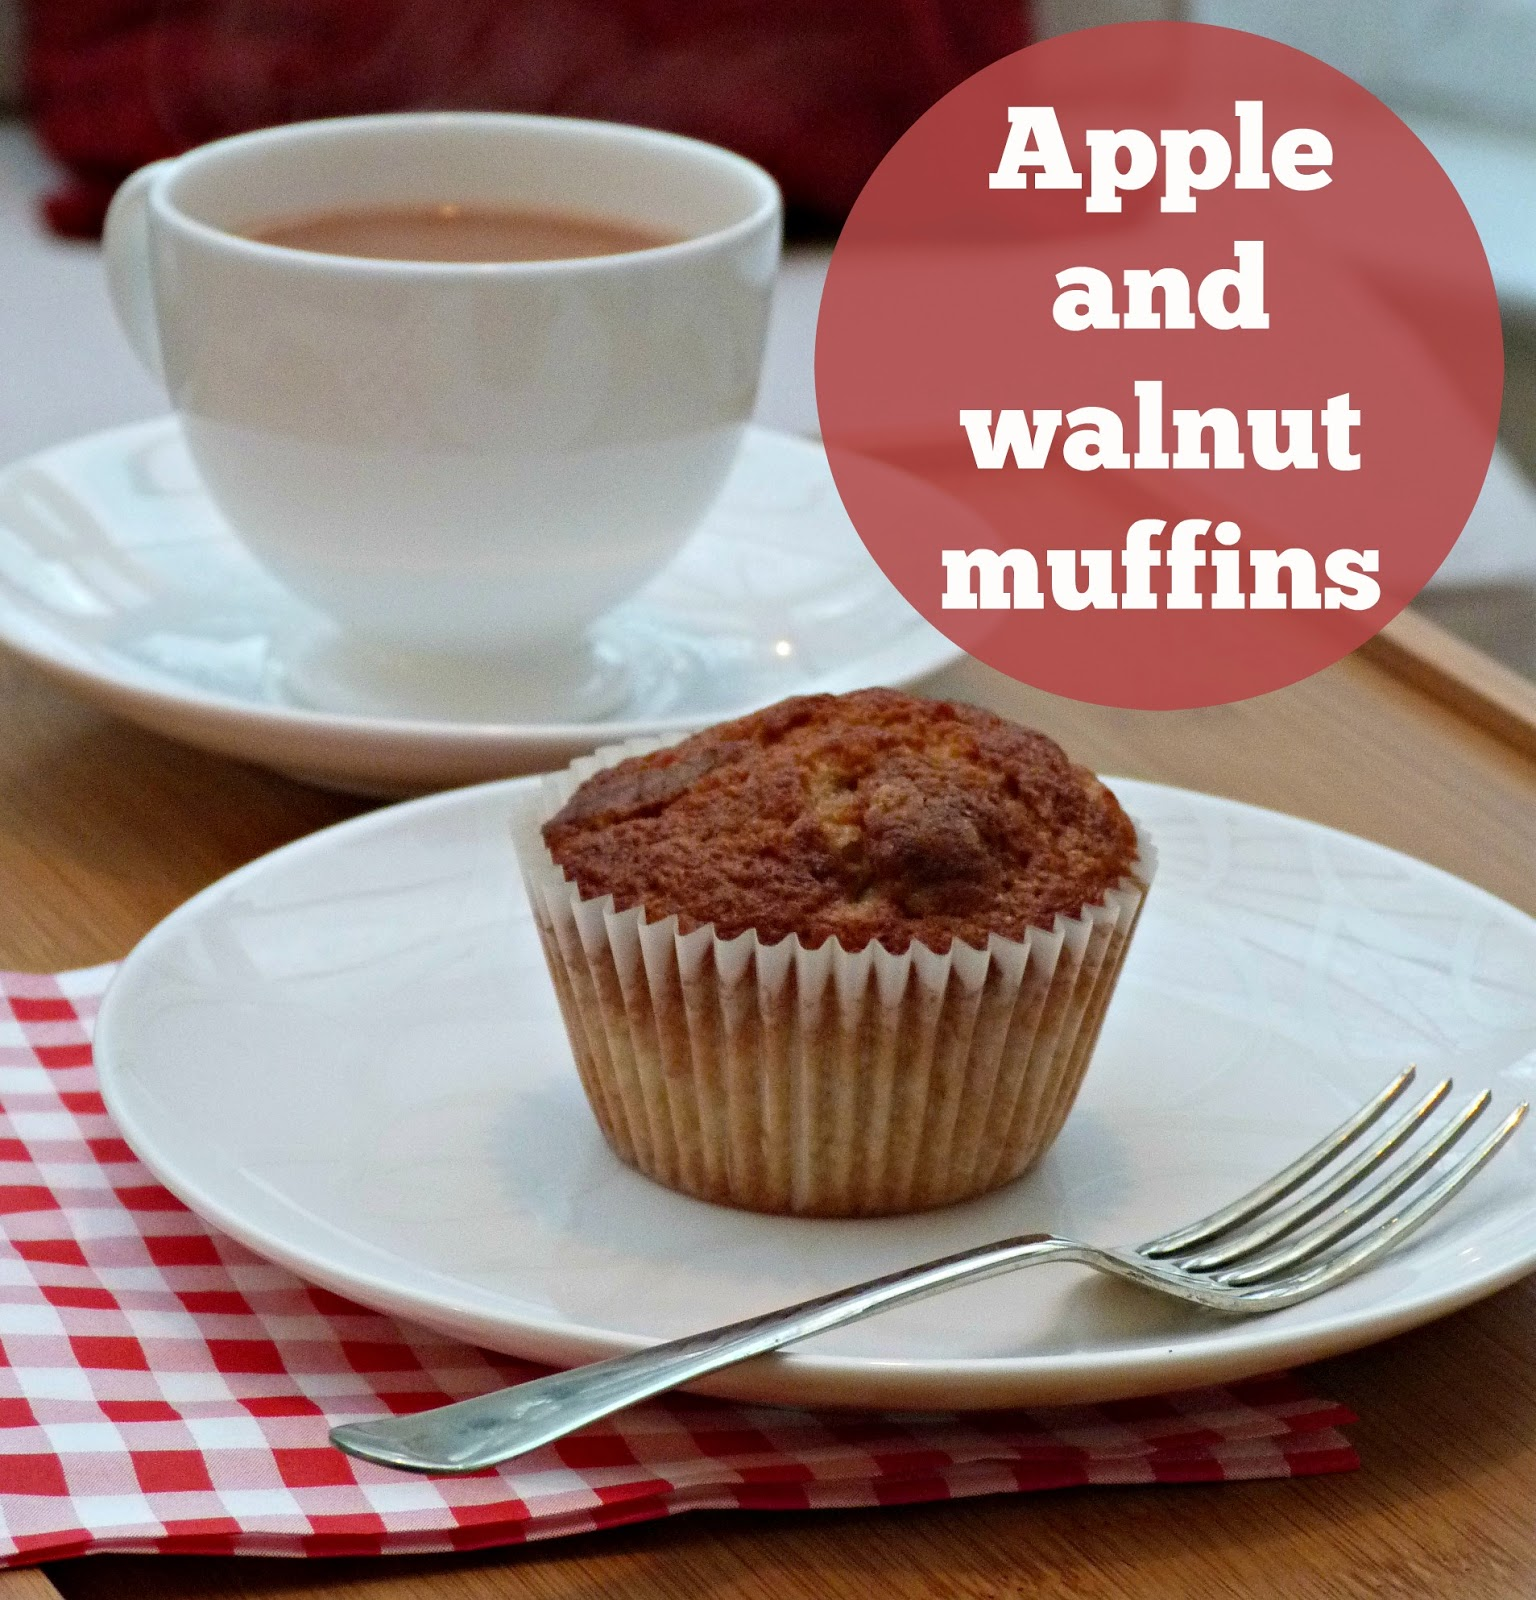 Apple and walnut muffins